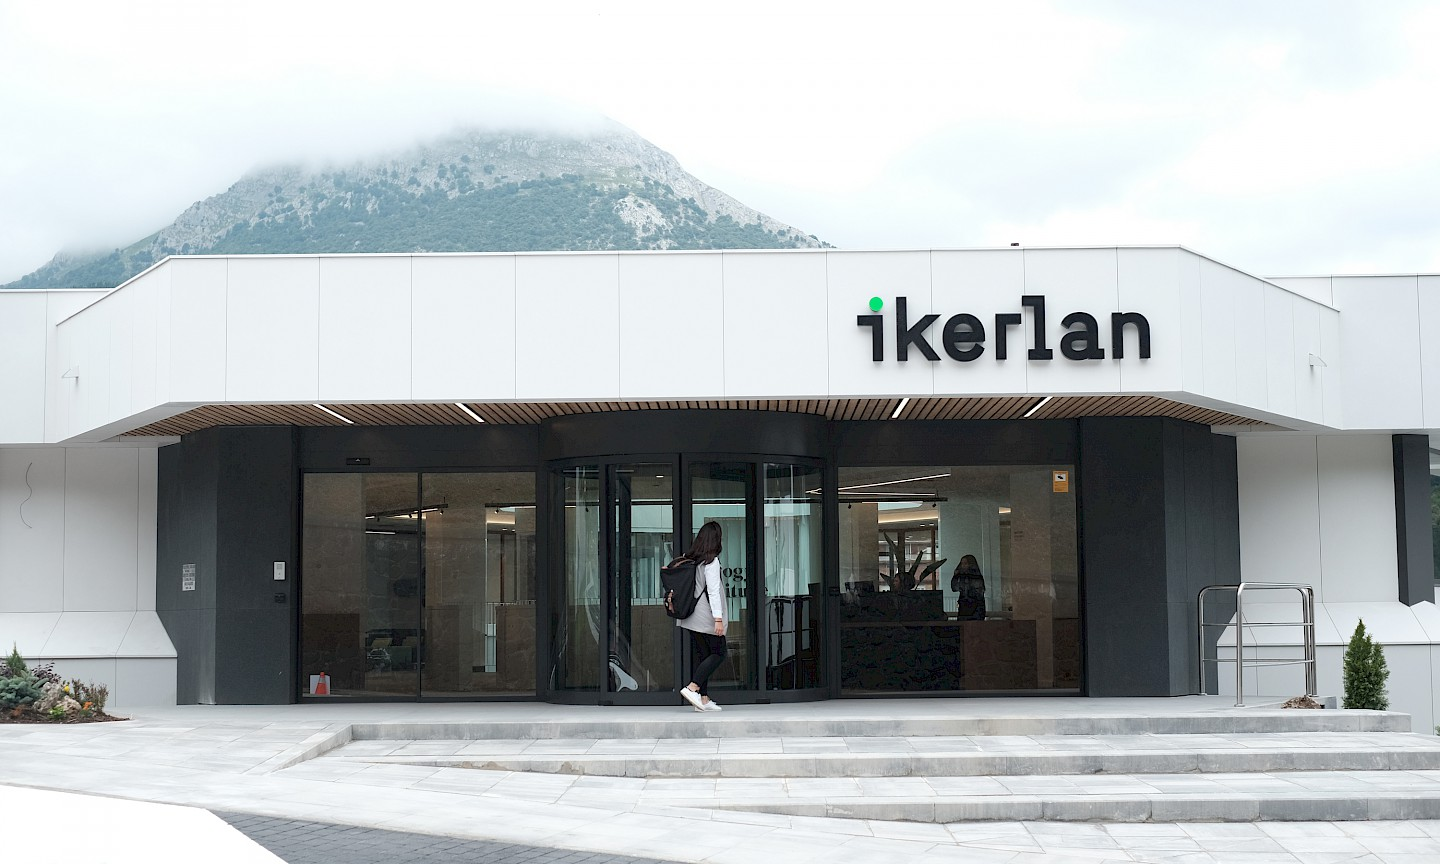 environment_8 ikerlan design branding move technology